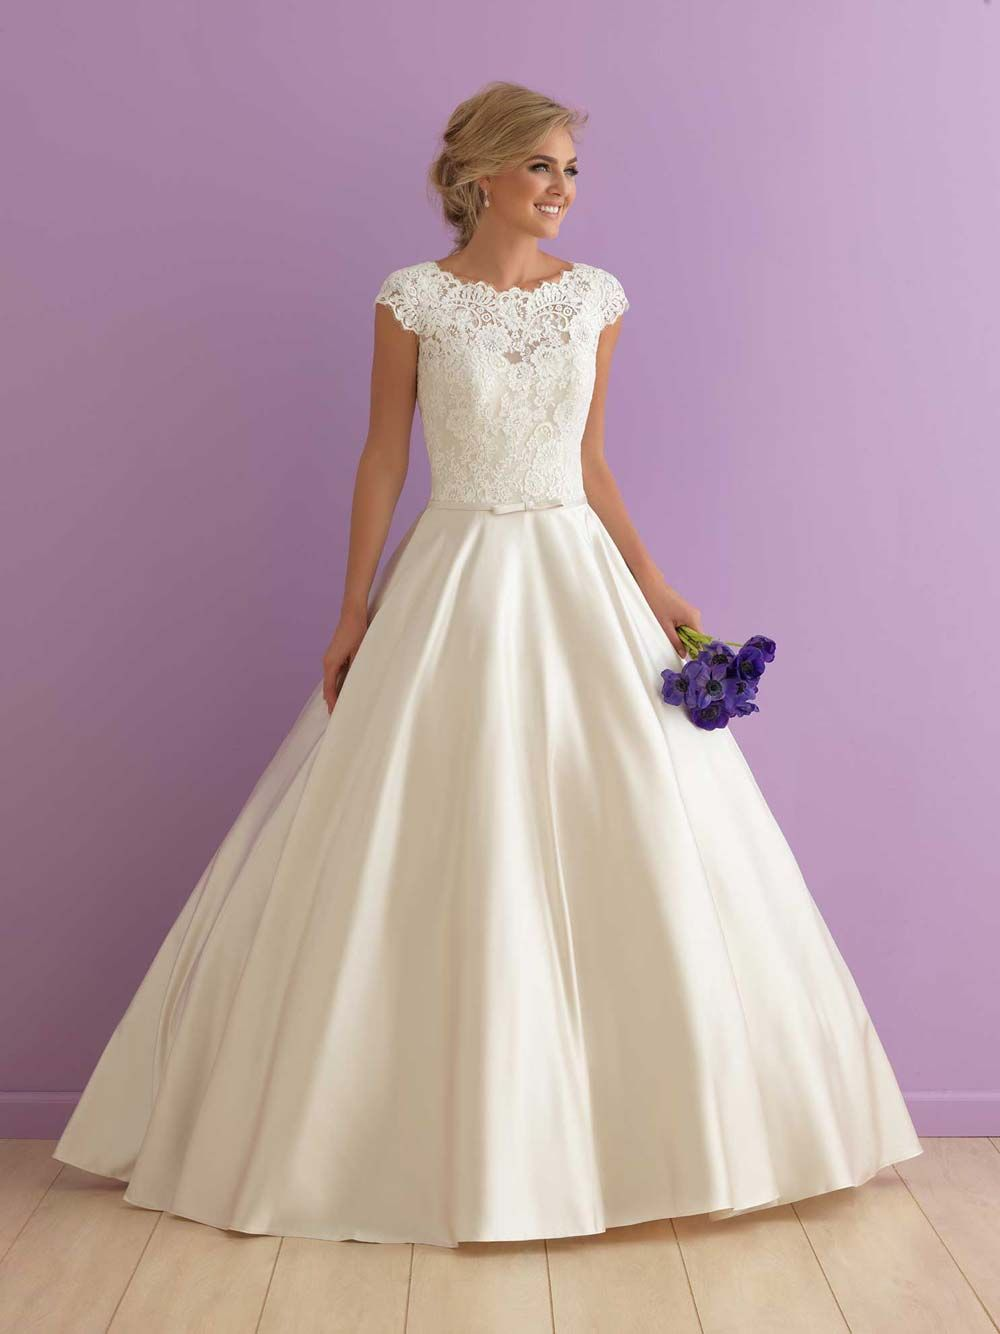 Wedding dresses with illusion necklines of our favourite styles